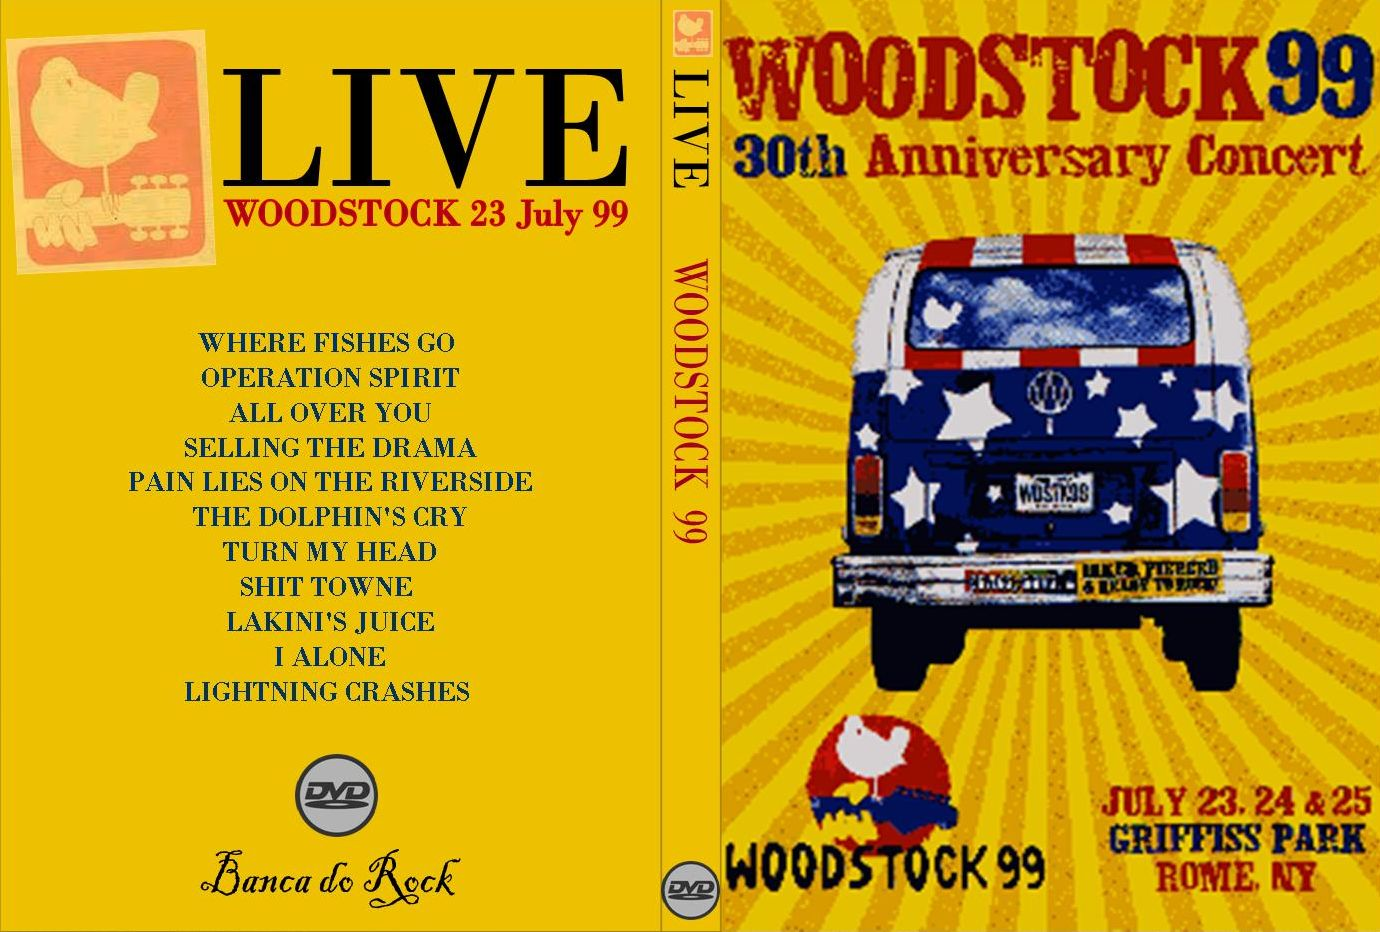 Live Woodstock 99 Related Keywords & Suggestions - Live